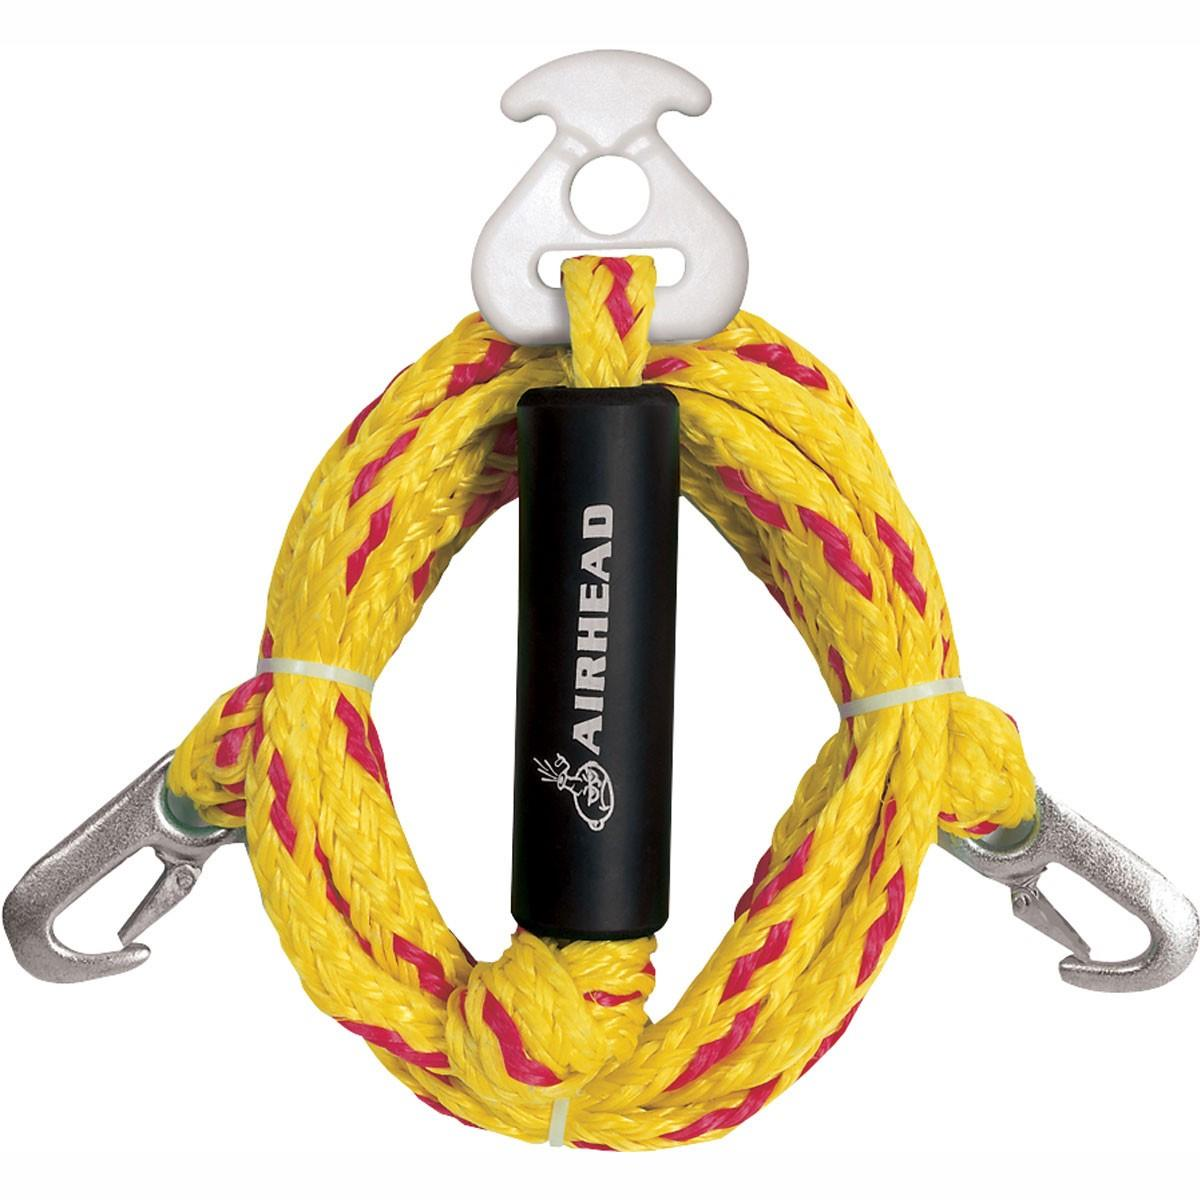 Airhead AHTH-2 Heavy Duty Tow Harness 4 Riders by Airhead